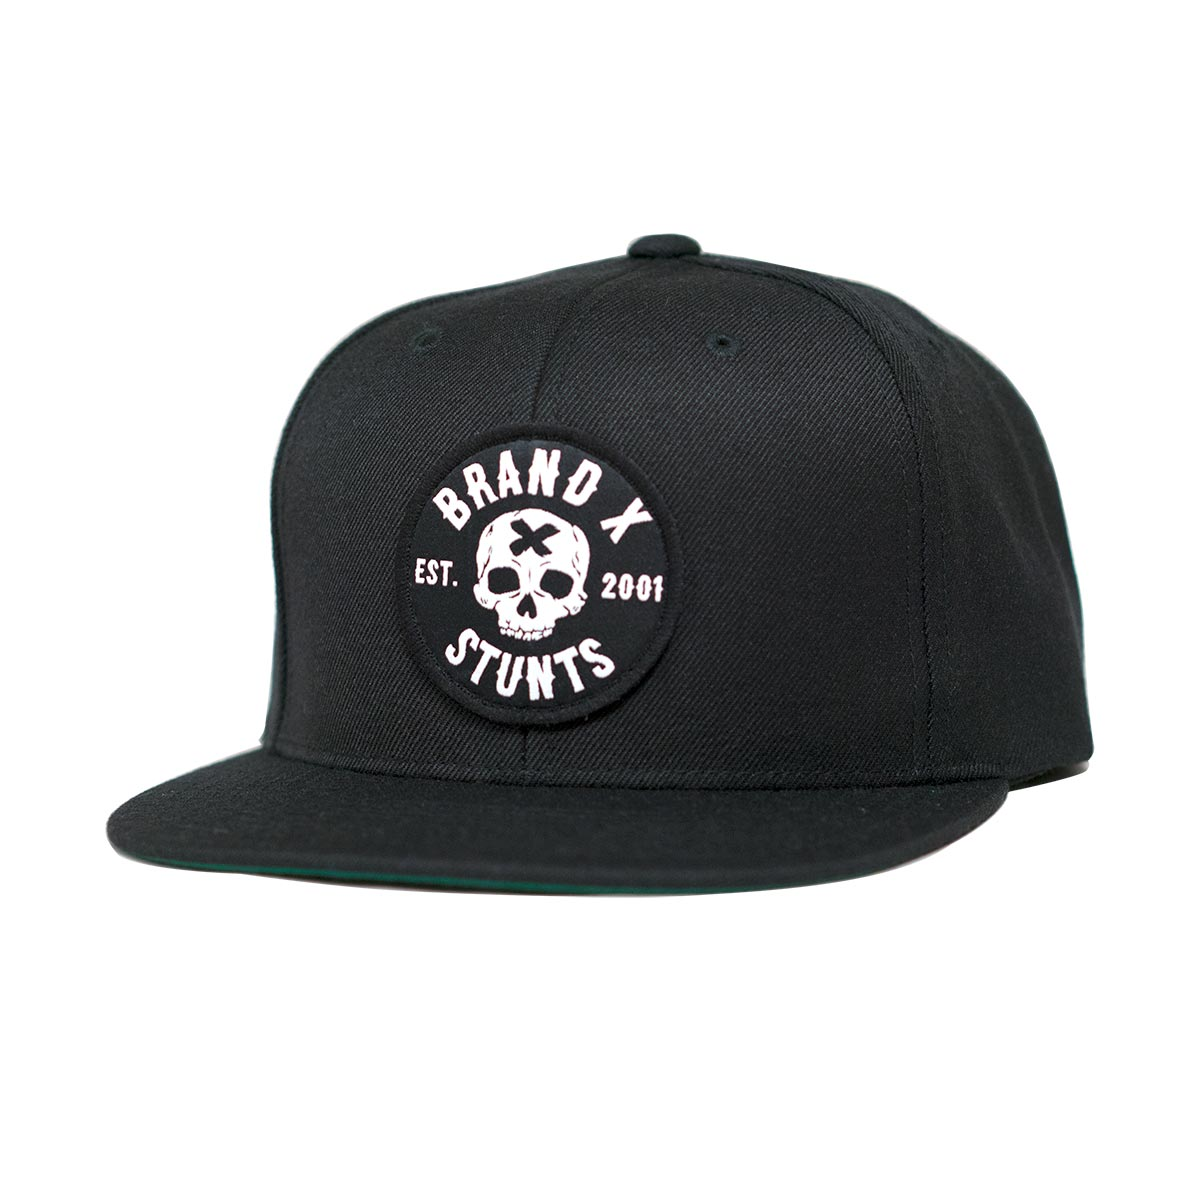 Fasthouse - Brand X, X Man Hat - Black